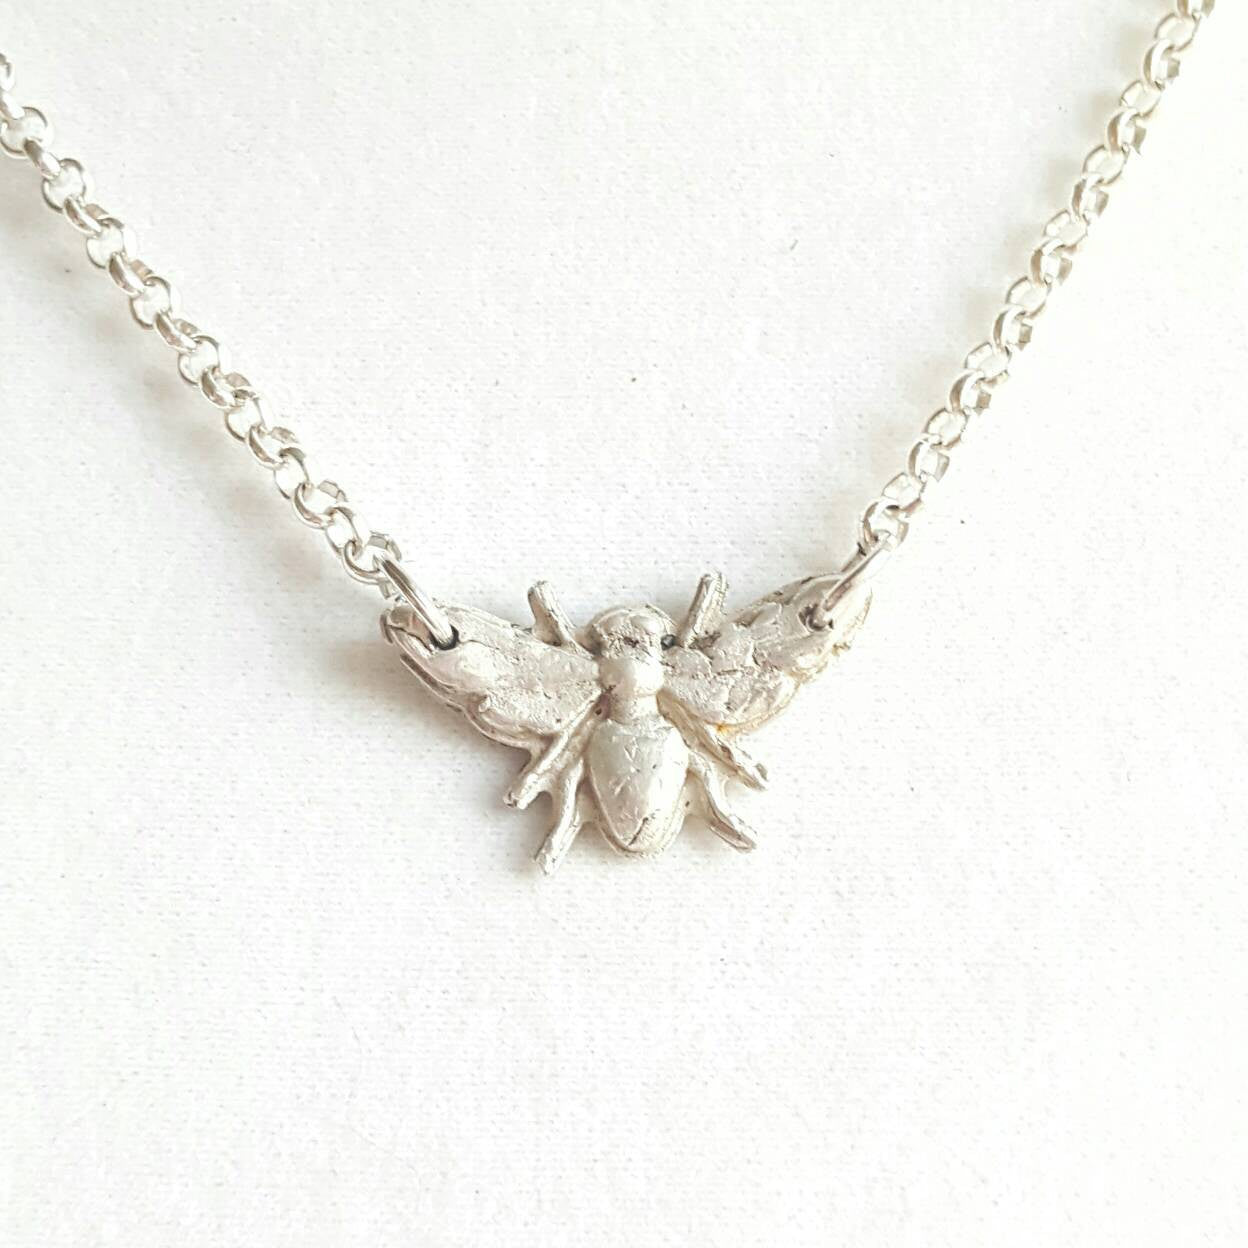 Sterling Silver Necklace - Queen Bee Necklace - Ren Faire - Bridesmaid Gift - Bumble Bee - 925 Jewelry - Bridesmaid Jewelry - Gift for Her - Handmade Jewelry - Ren Faire - DRAVYNMOOR